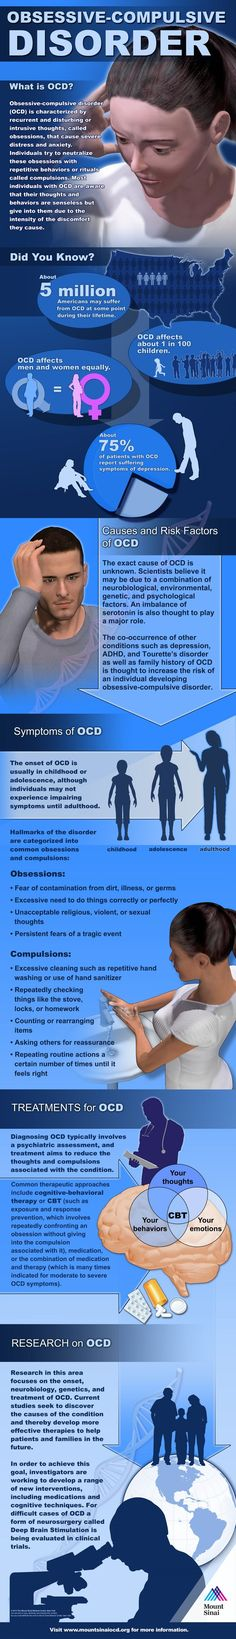 Obsessive Compulsive Disorder (OCD) Infographic - Approximately five million Americans may suffer from obsessive-compulsive disorder (OCD) at some point in their lives. Learn about common obsessions and compulsions as well as the therapies used to treat them. Published by Mount Sinai Health System: